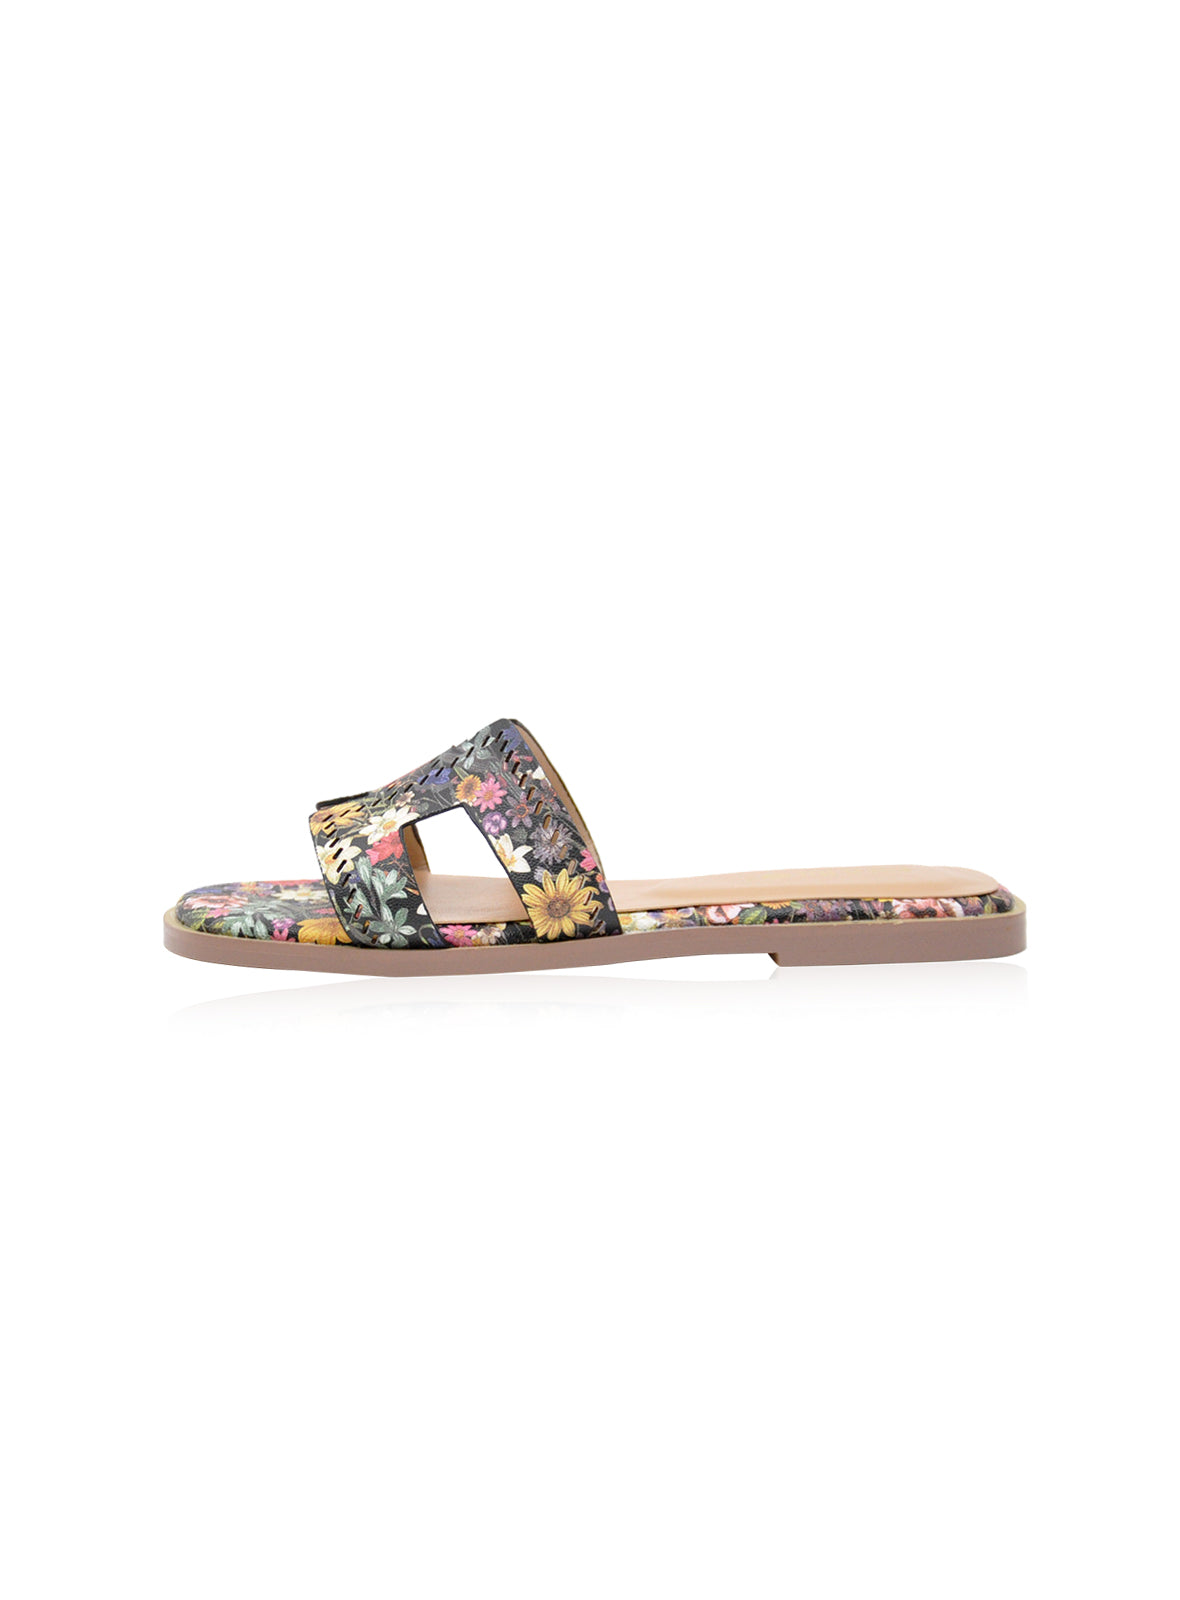 Allison Flats in Black Floral